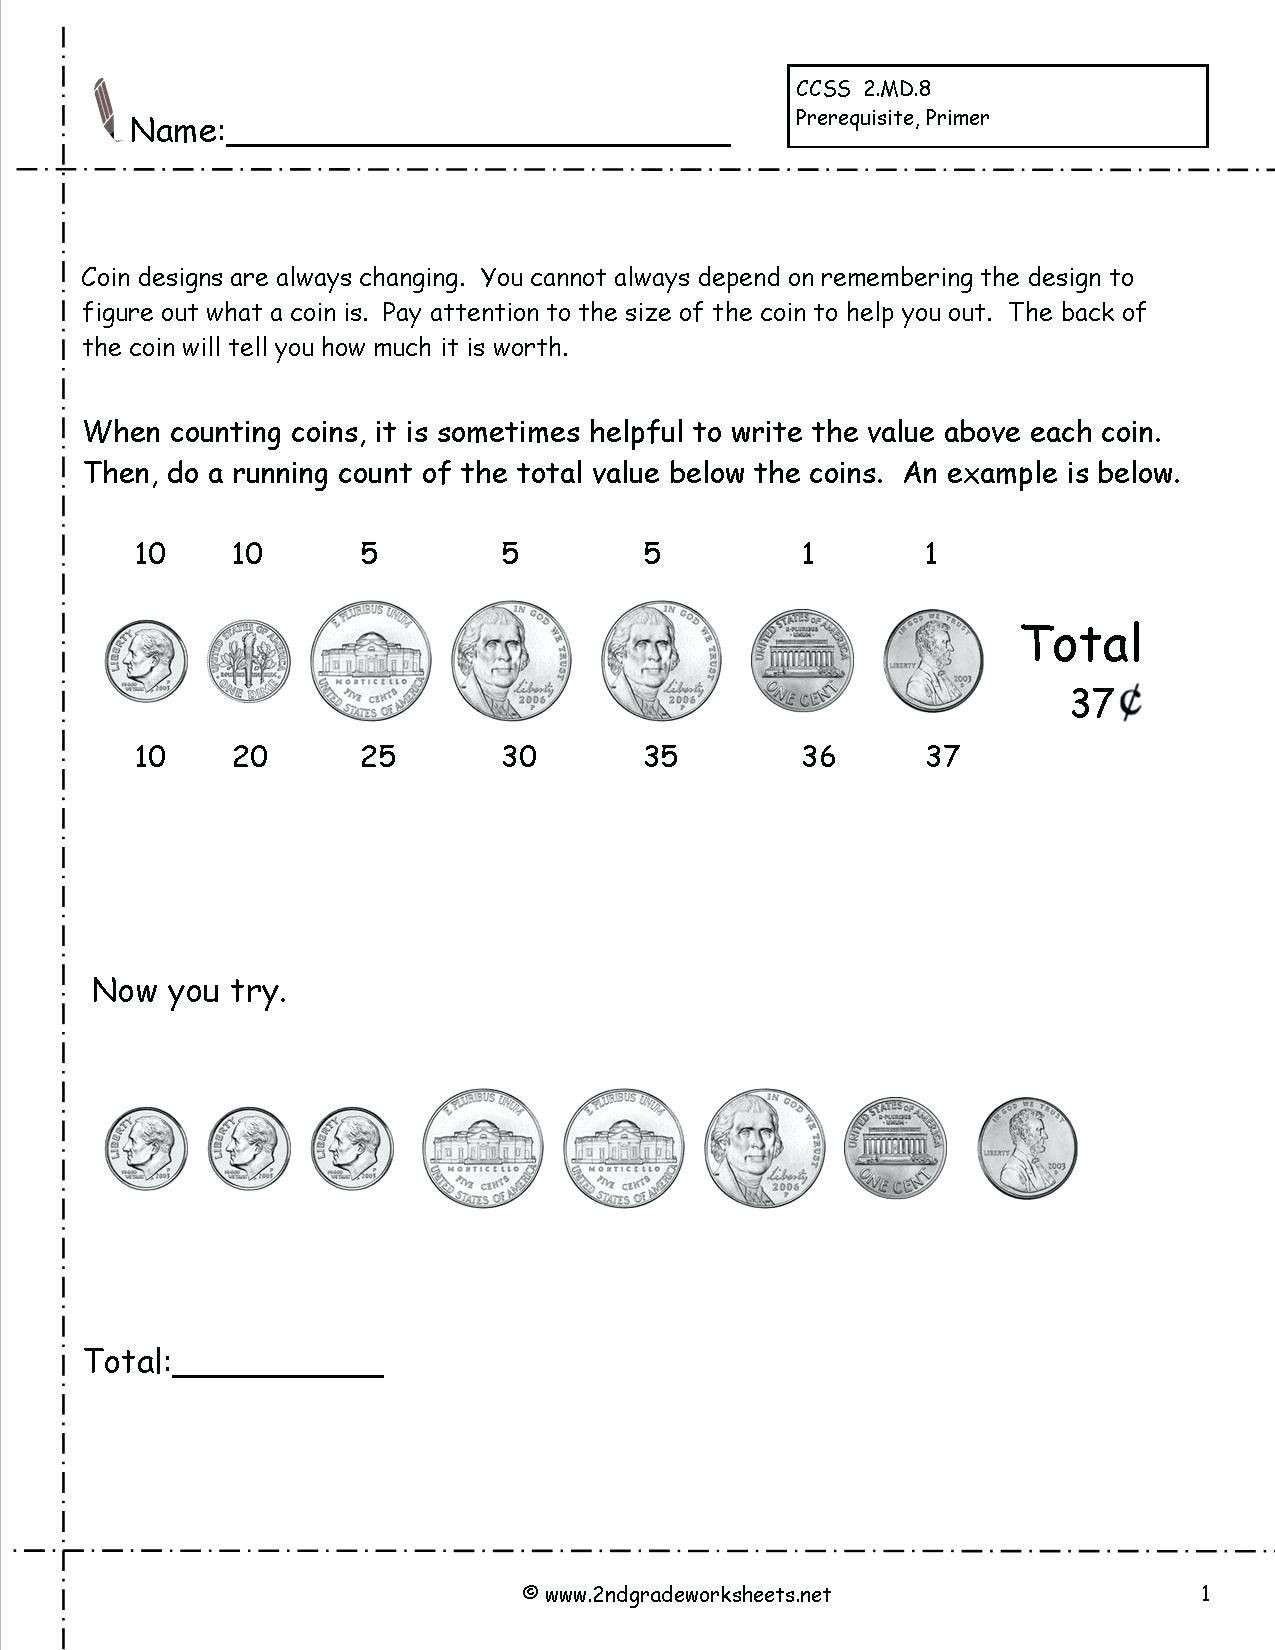 Counting Coins Worksheets First Grade 5 Free Math Worksheets First Grade 1 Counting Money Counting